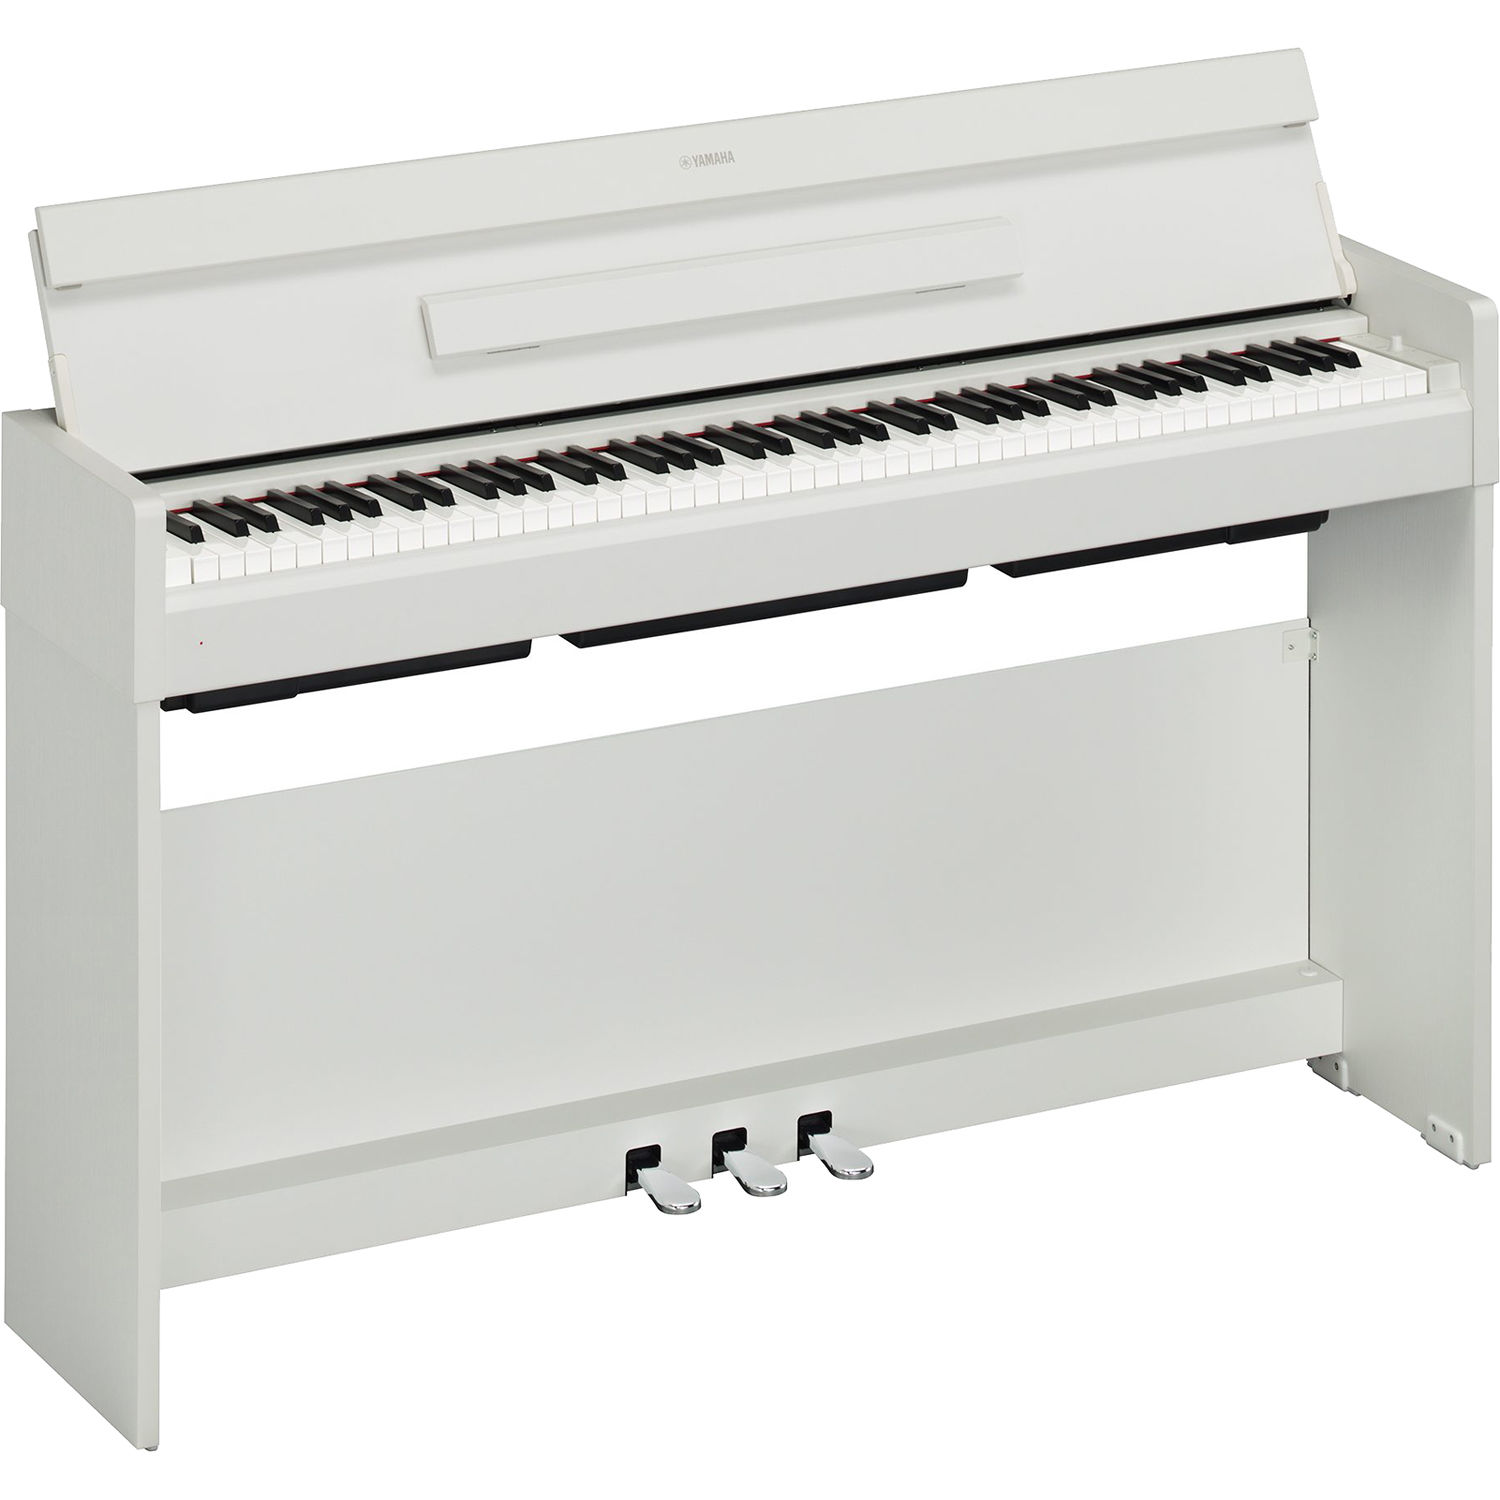 yamaha arius ydp s34 digital piano white walnut ydps34wh b h. Black Bedroom Furniture Sets. Home Design Ideas